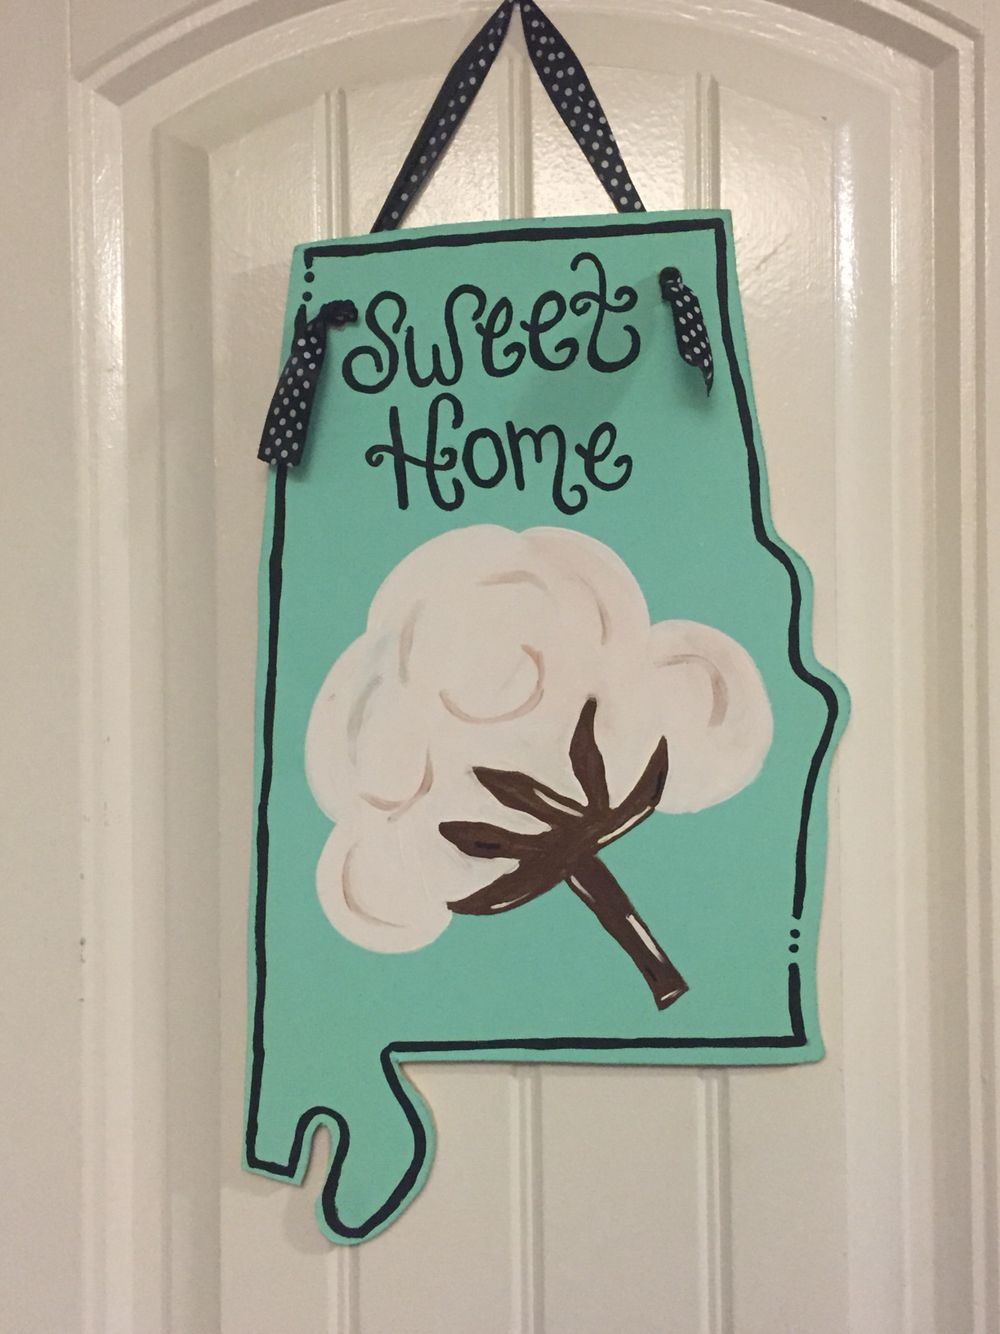 Sweet Home Alabama wooden door hanger $45 shipped. & Sweet Home Alabama wooden door hanger $45 shipped. | Door hangers ... pezcame.com